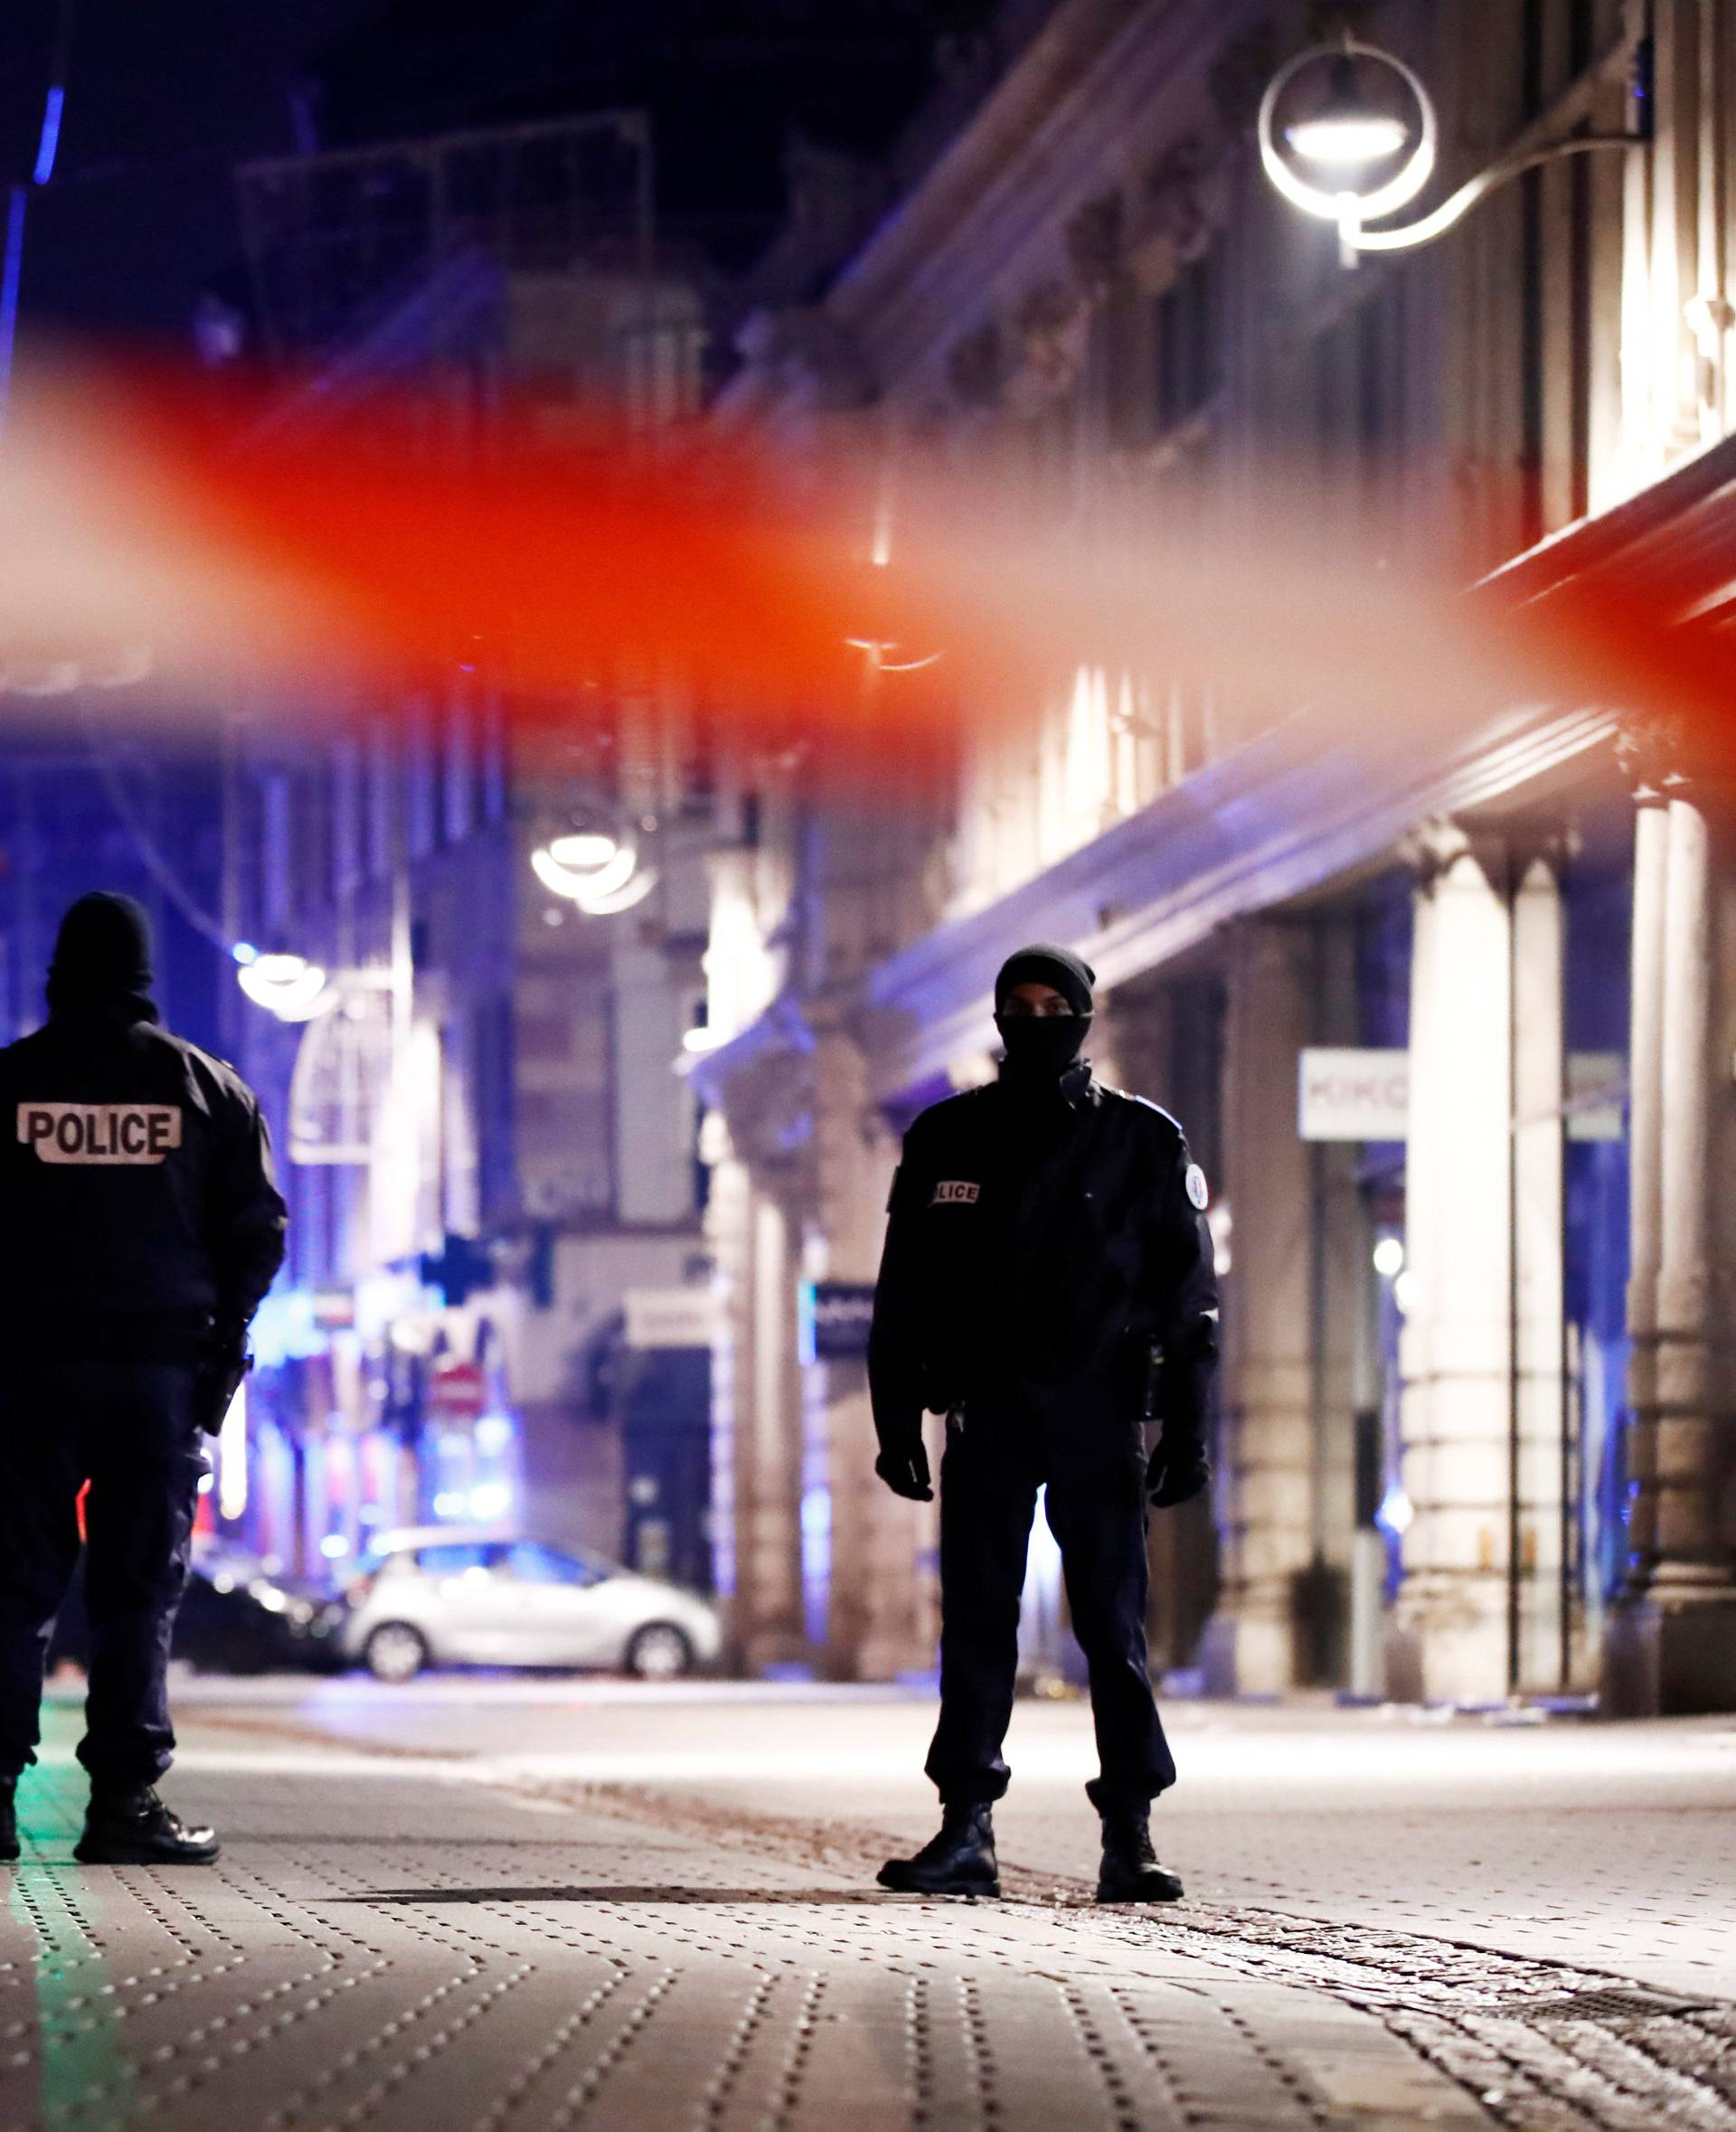 Police secure area where a suspect is sought after a shooting in Strasbourg